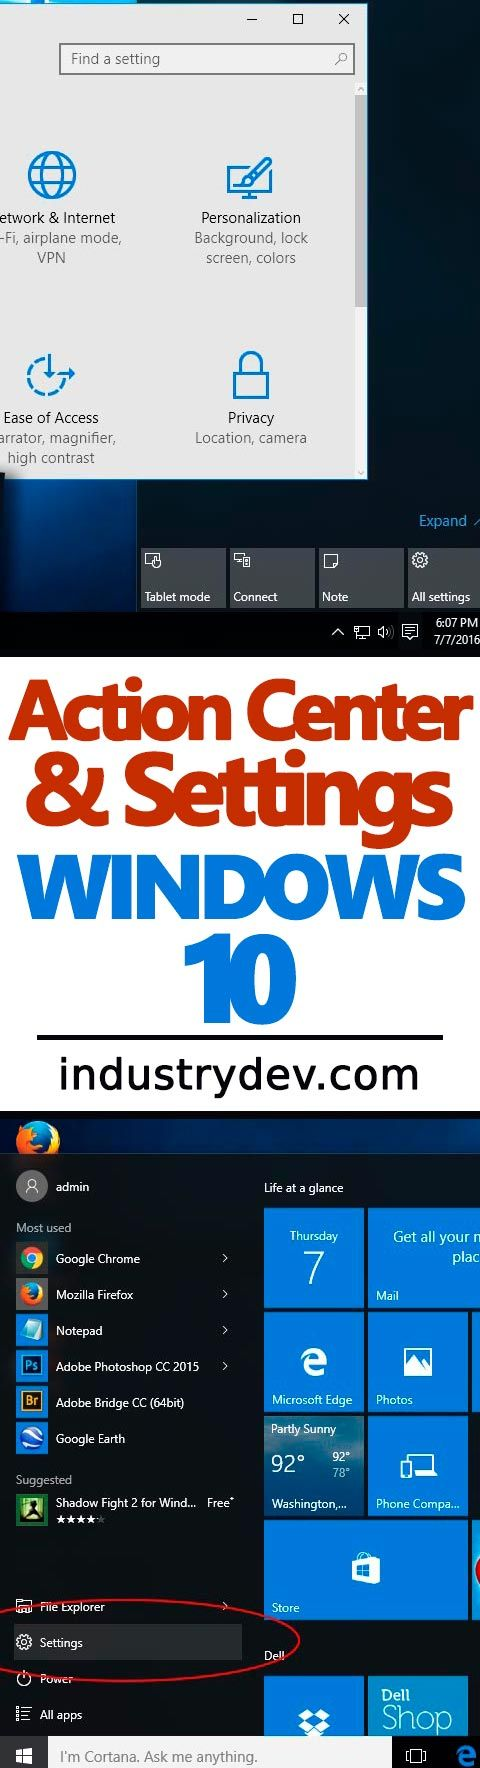 How to Change Settings & Use the Action Center in Windows 10: There's a new panel in town and it's called the Action Center. It tells you all sorts of things, such as when your computer needs an update, when you have an email and allows you to view calendar events that are near. It also includes shortcut to many important settings. In my most recent post, I give a quick tour of this area and clue you in to how you can easily navigate this area as well as modify a few settings.